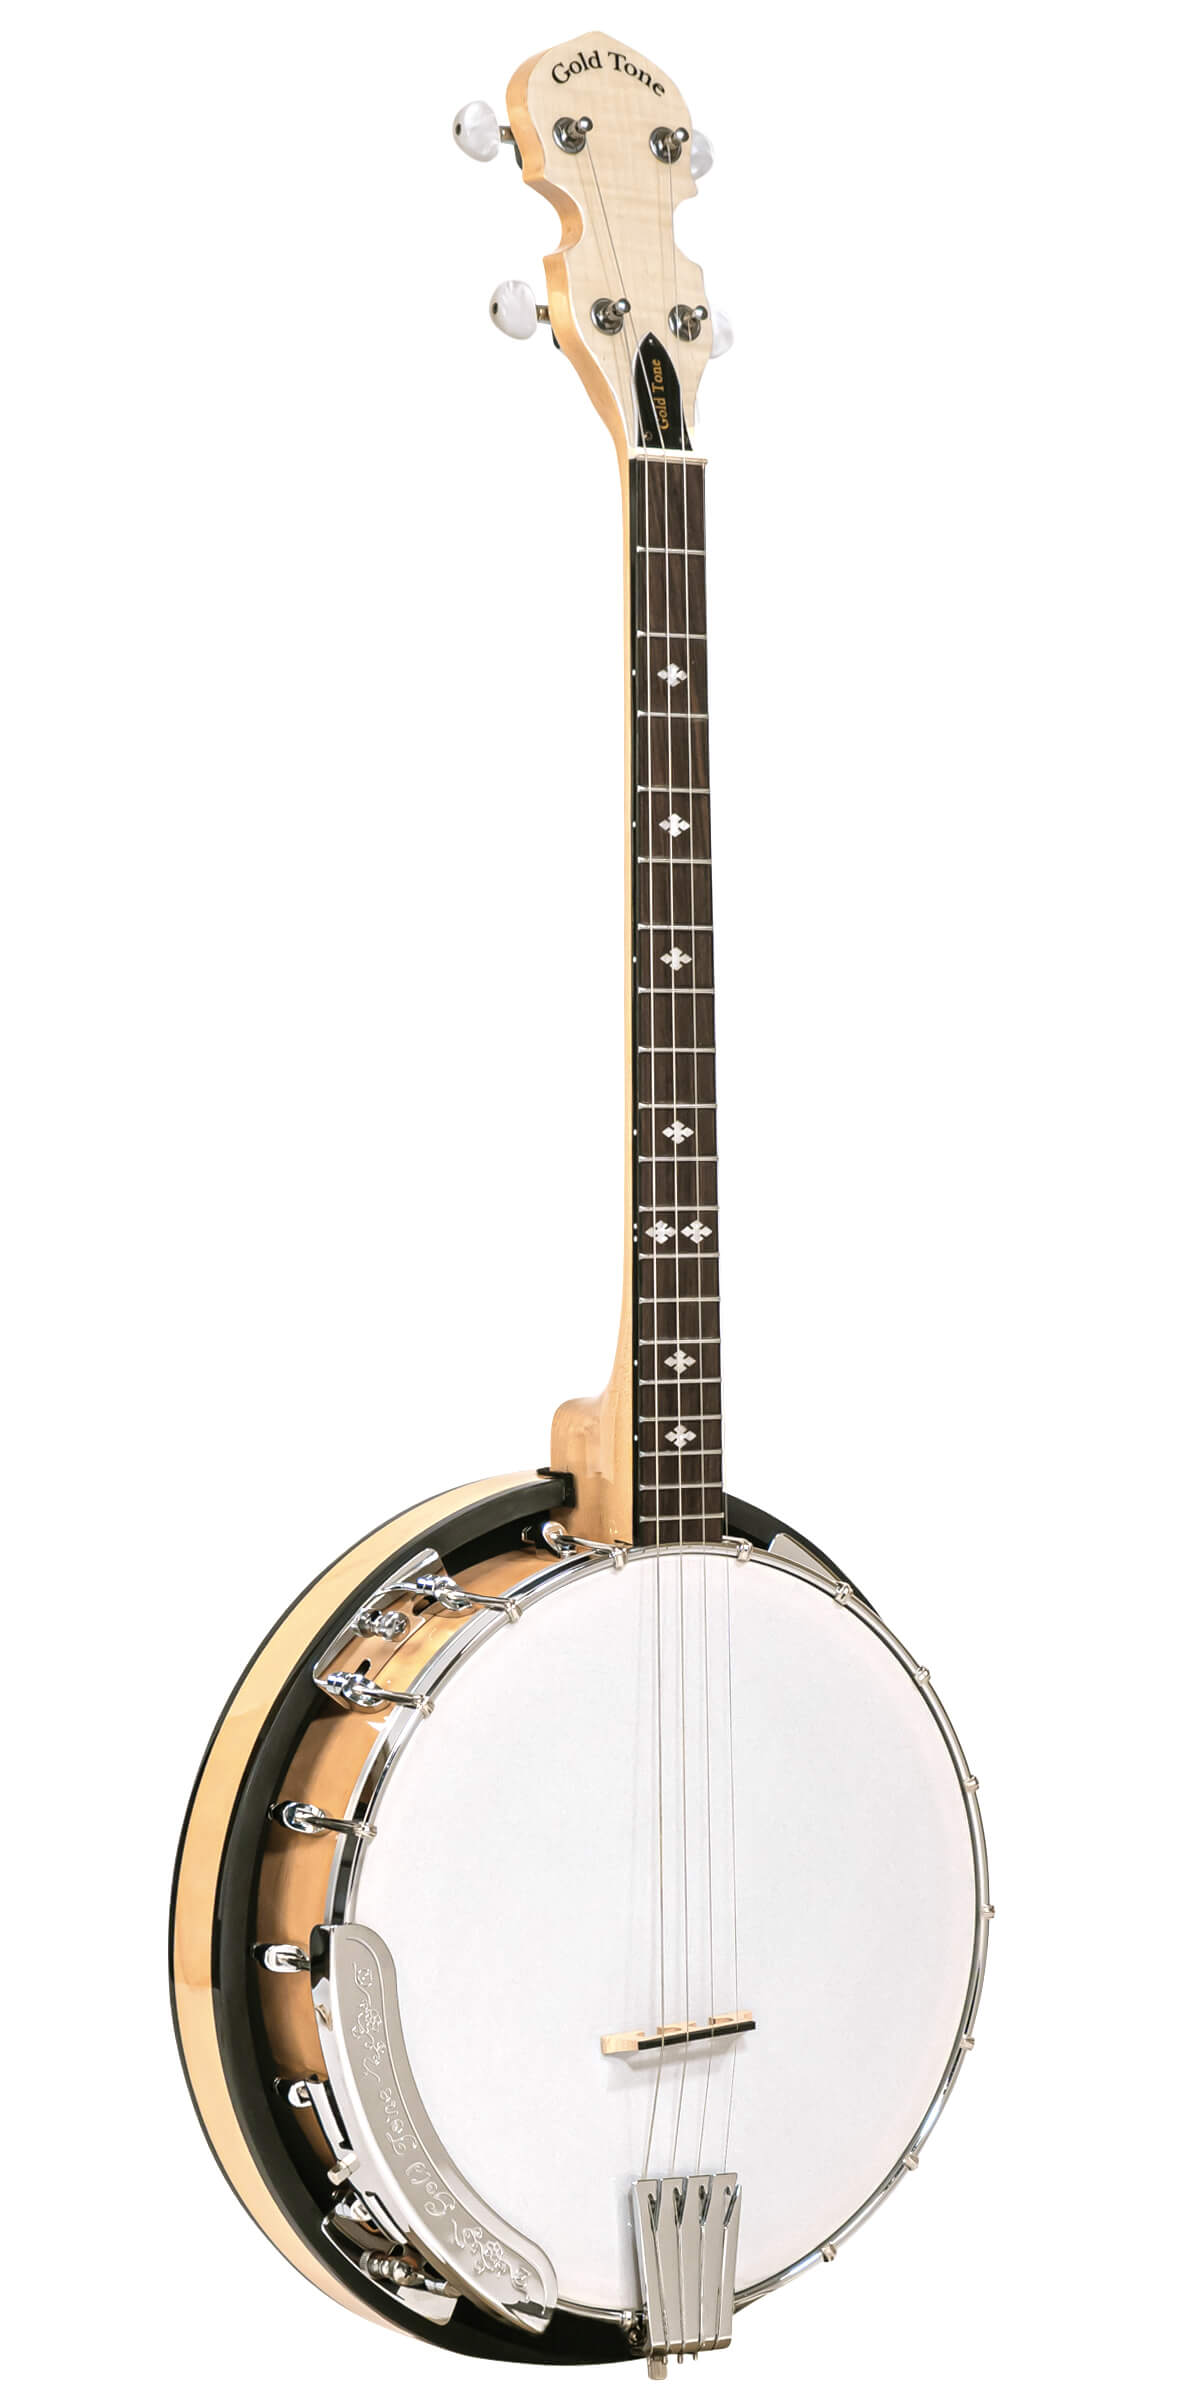 CC-Tenor: Cripple Creek Tenor Banjo